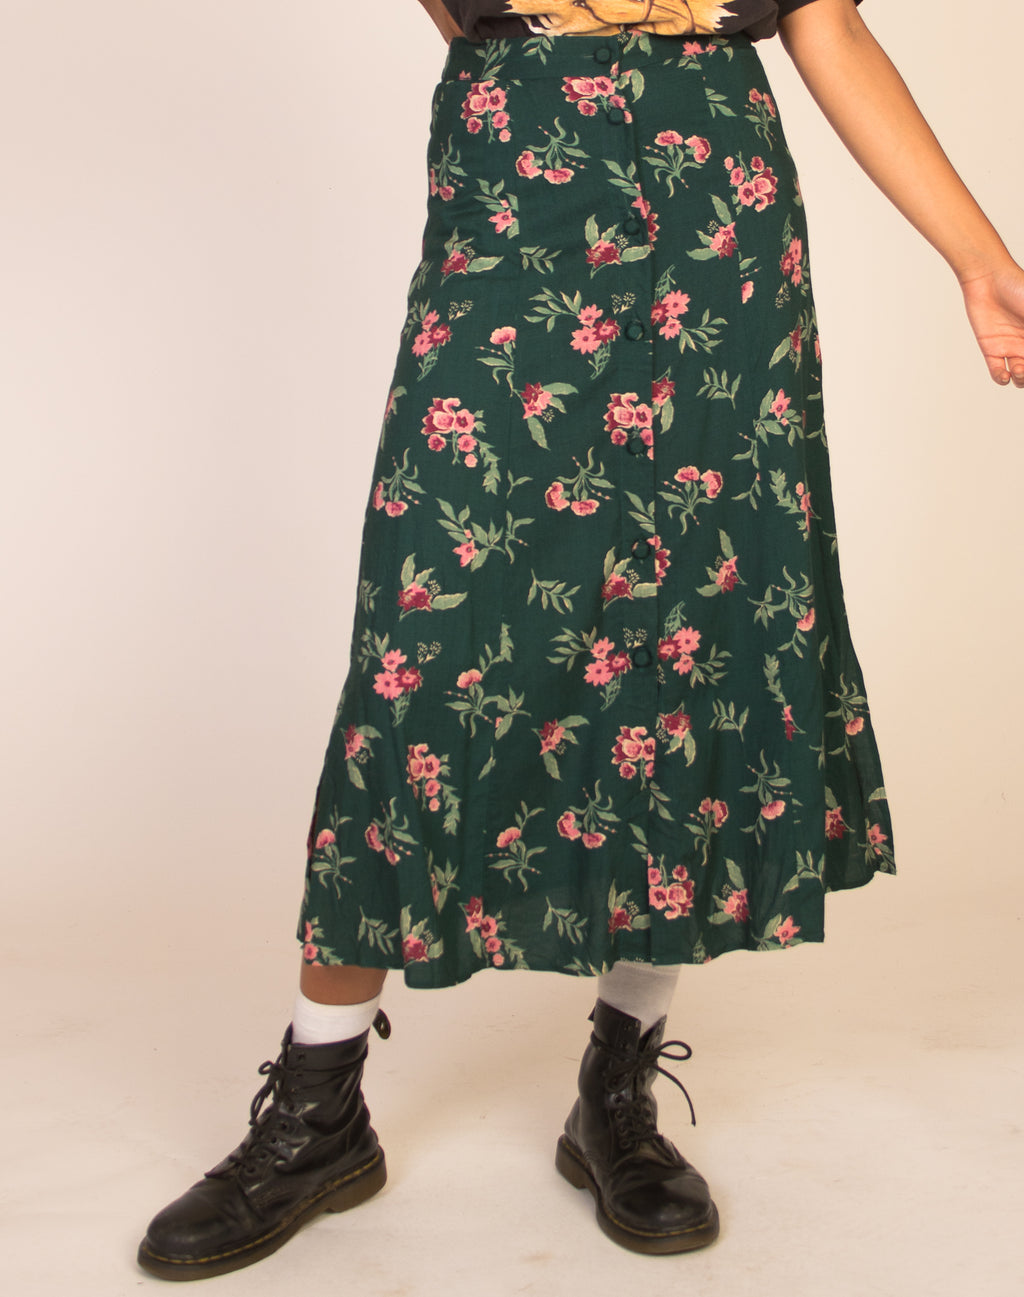 FOREST GREEN FLORAL SKIRT